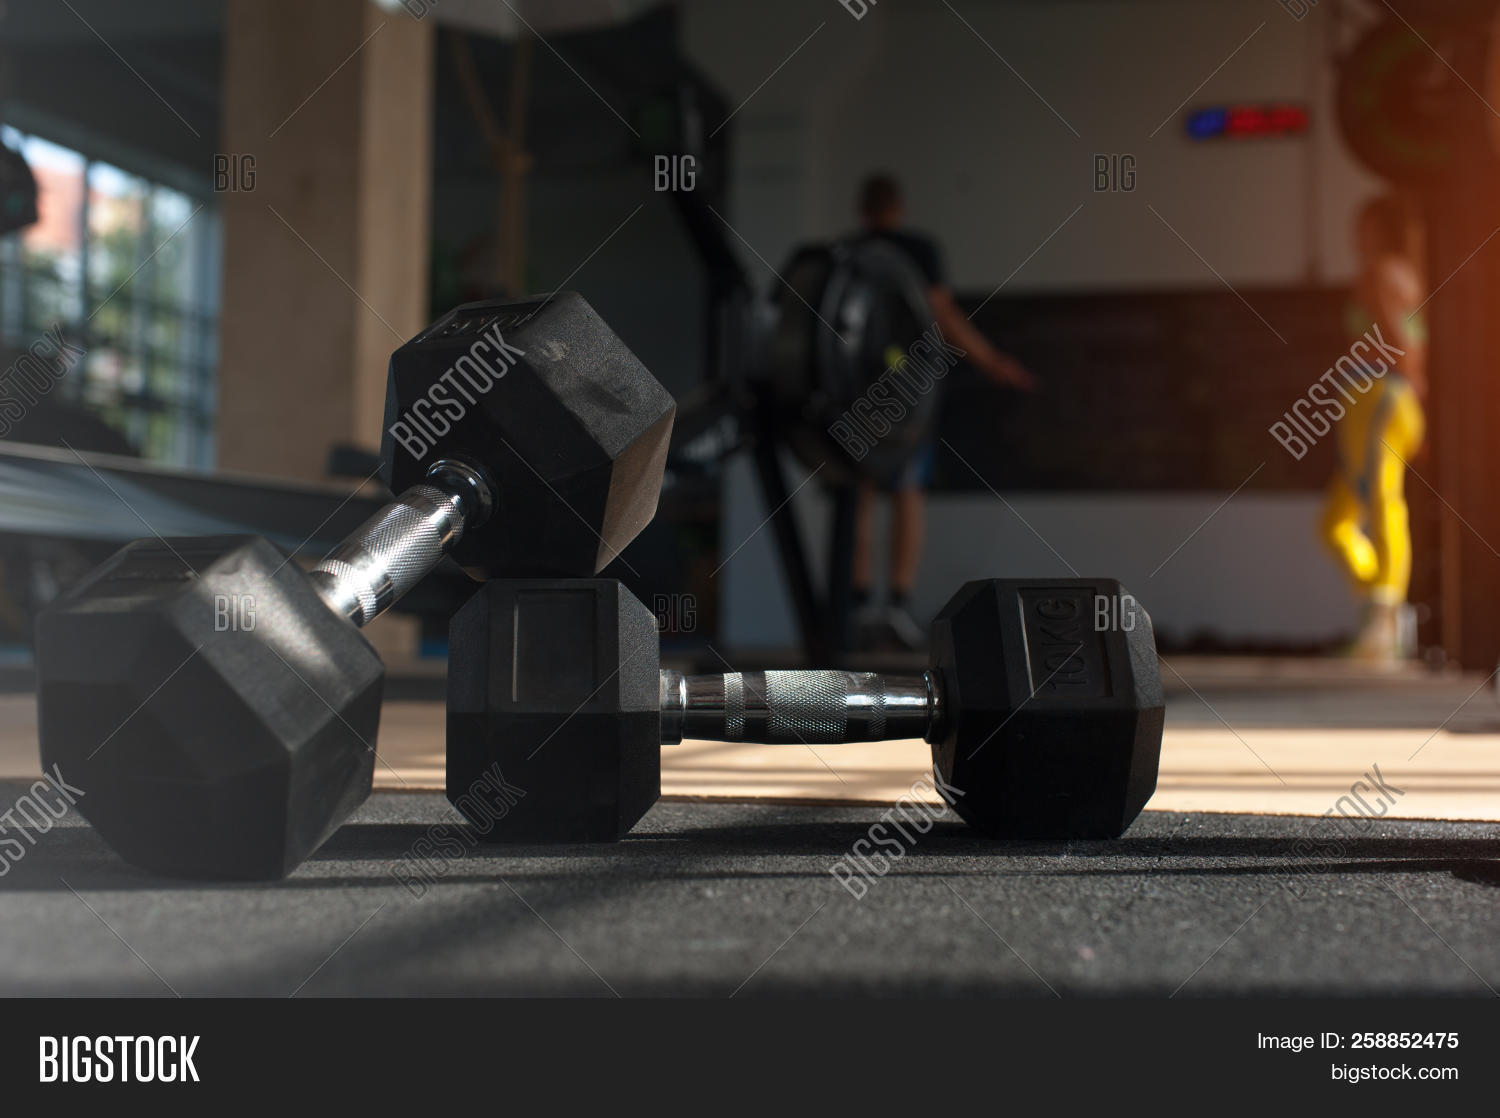 Workout Dumbbells  Image & Photo (Free Trial)   Bigstock